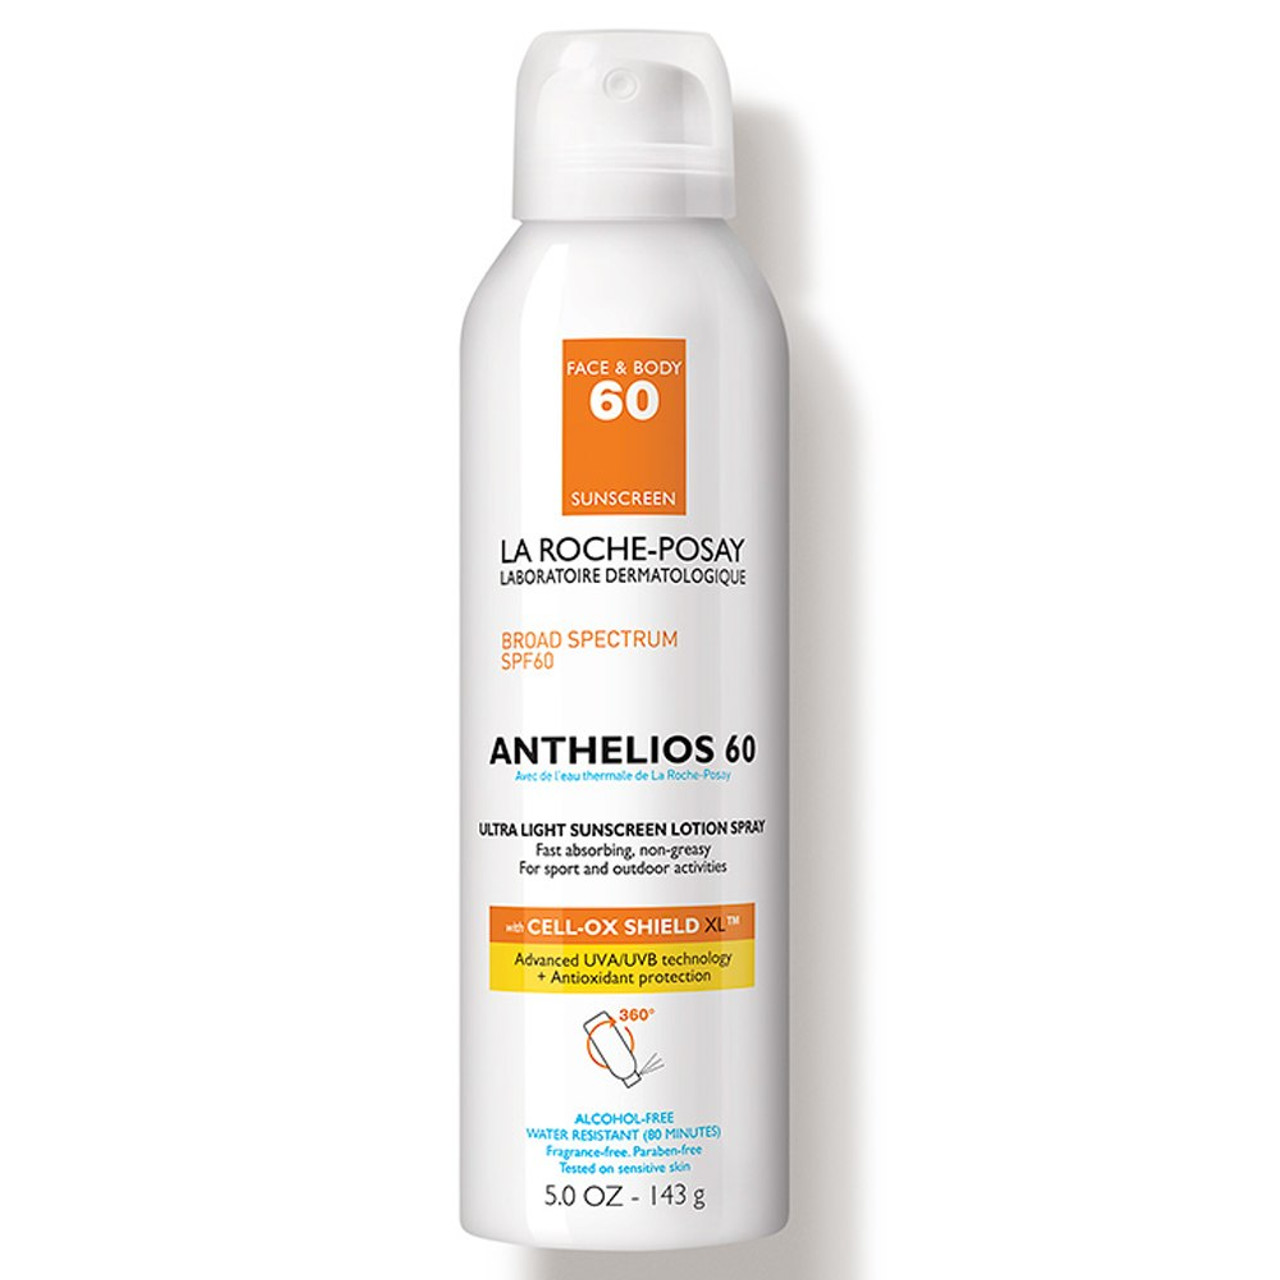 La Roche Posay Anthelios Ultra-Light Sunscreen Lotion Spray SPF 60